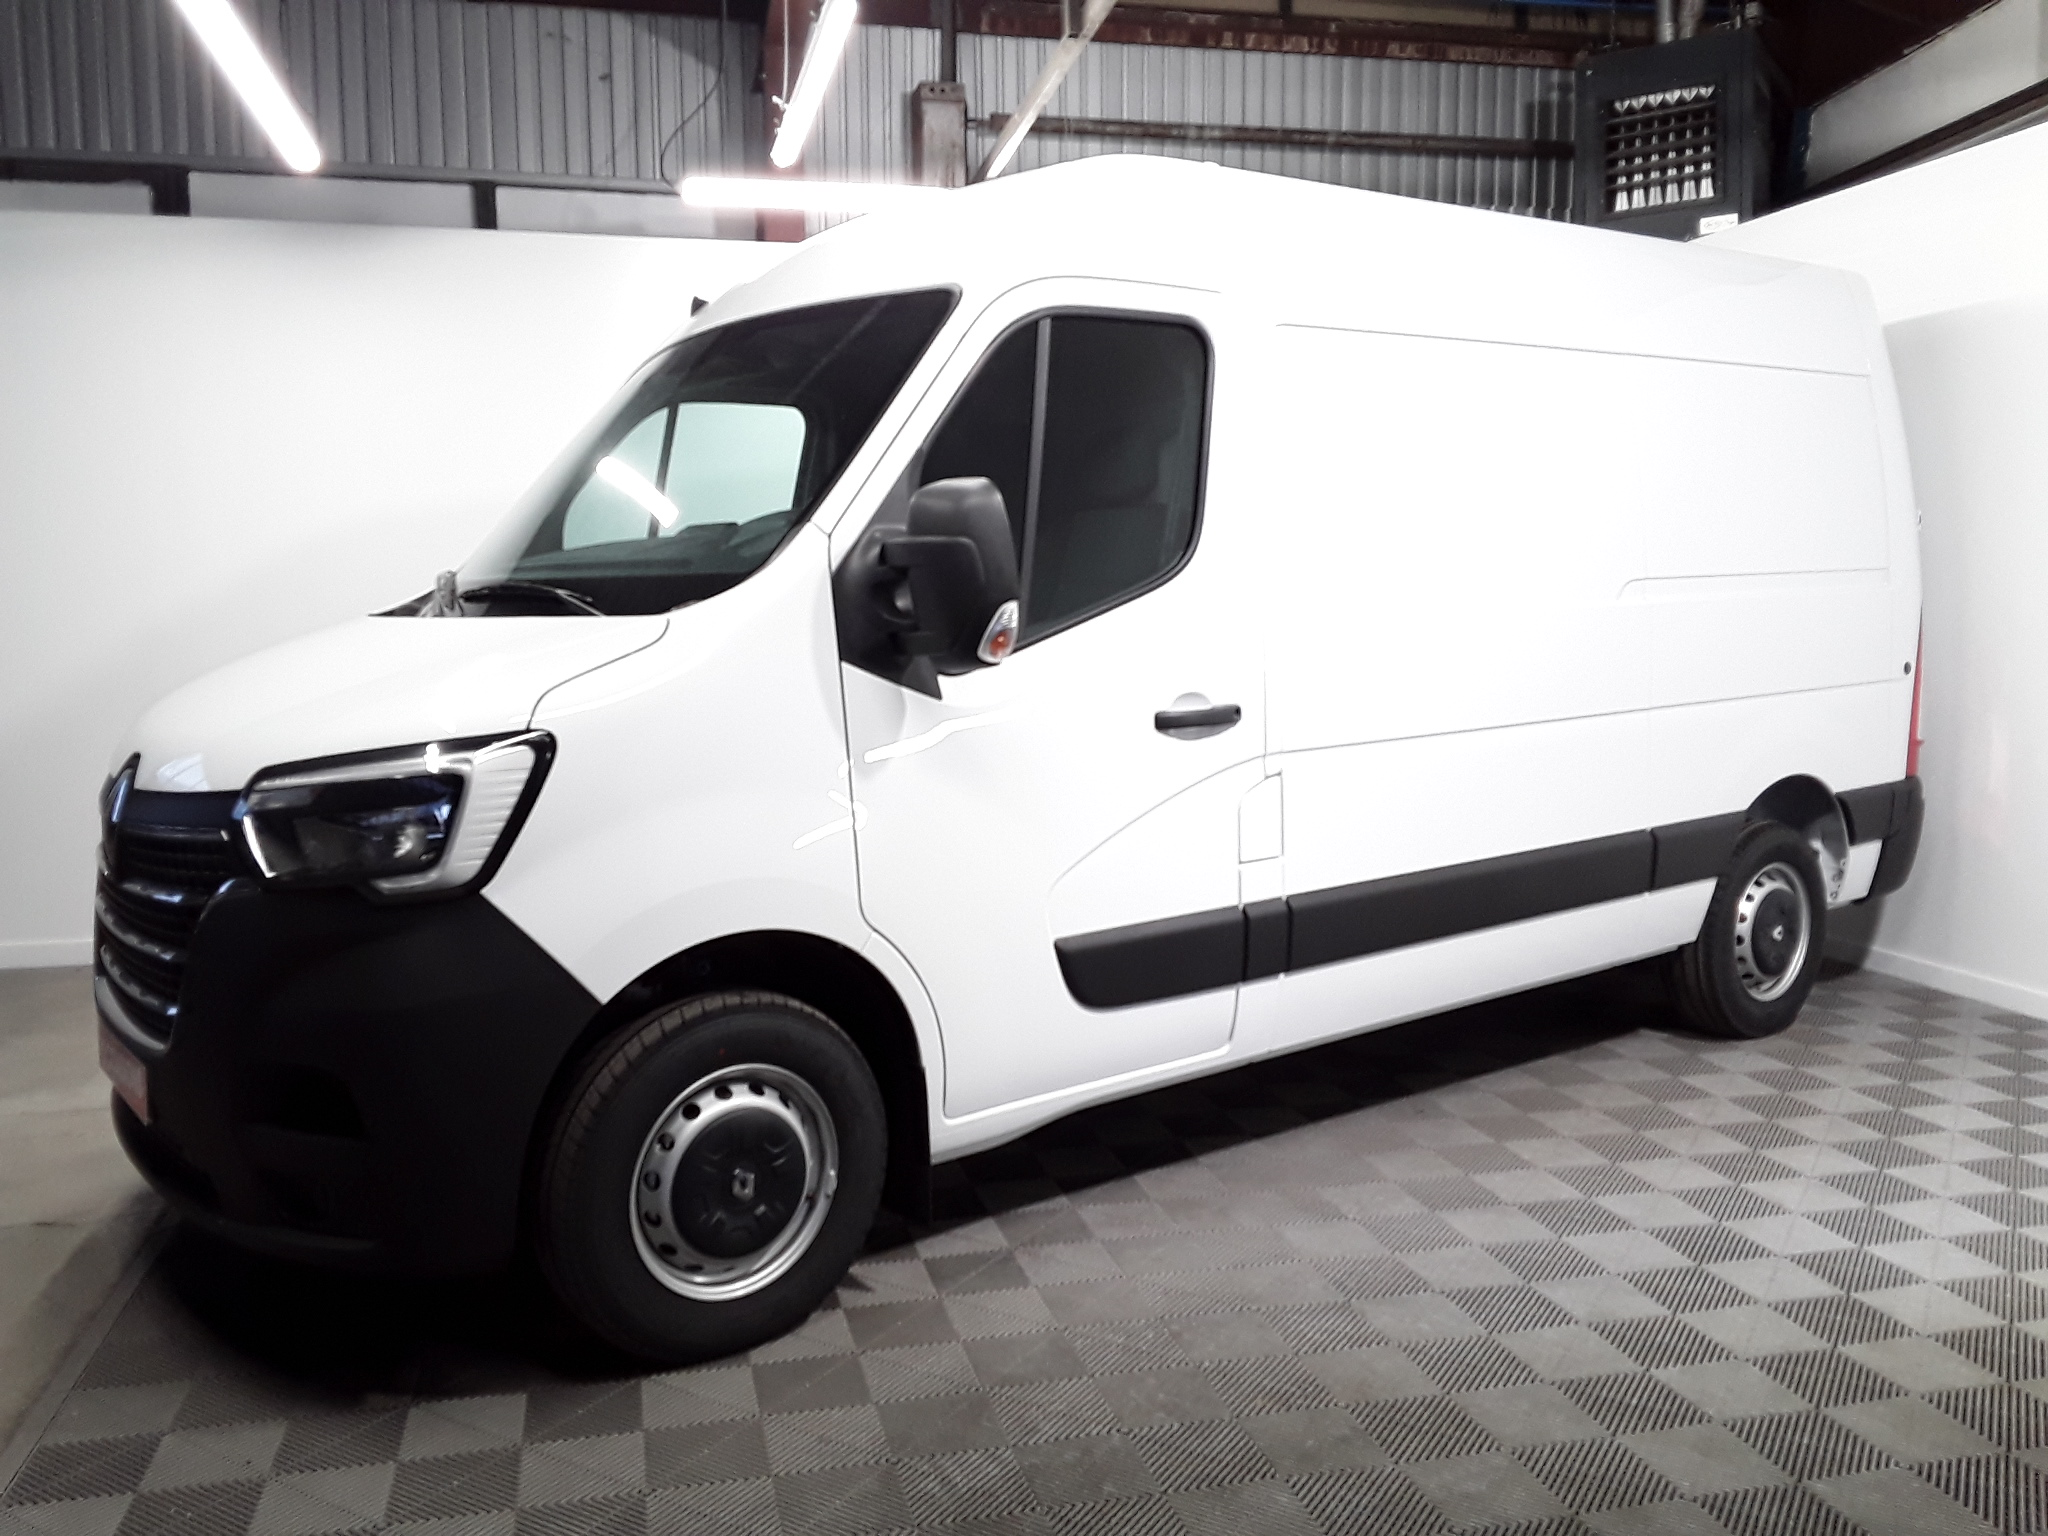 RENAULT MASTER FOURGON FGN TRAC F3500 L2H2 ENERGY DCI 150 GRAND CONFORT d'occasion